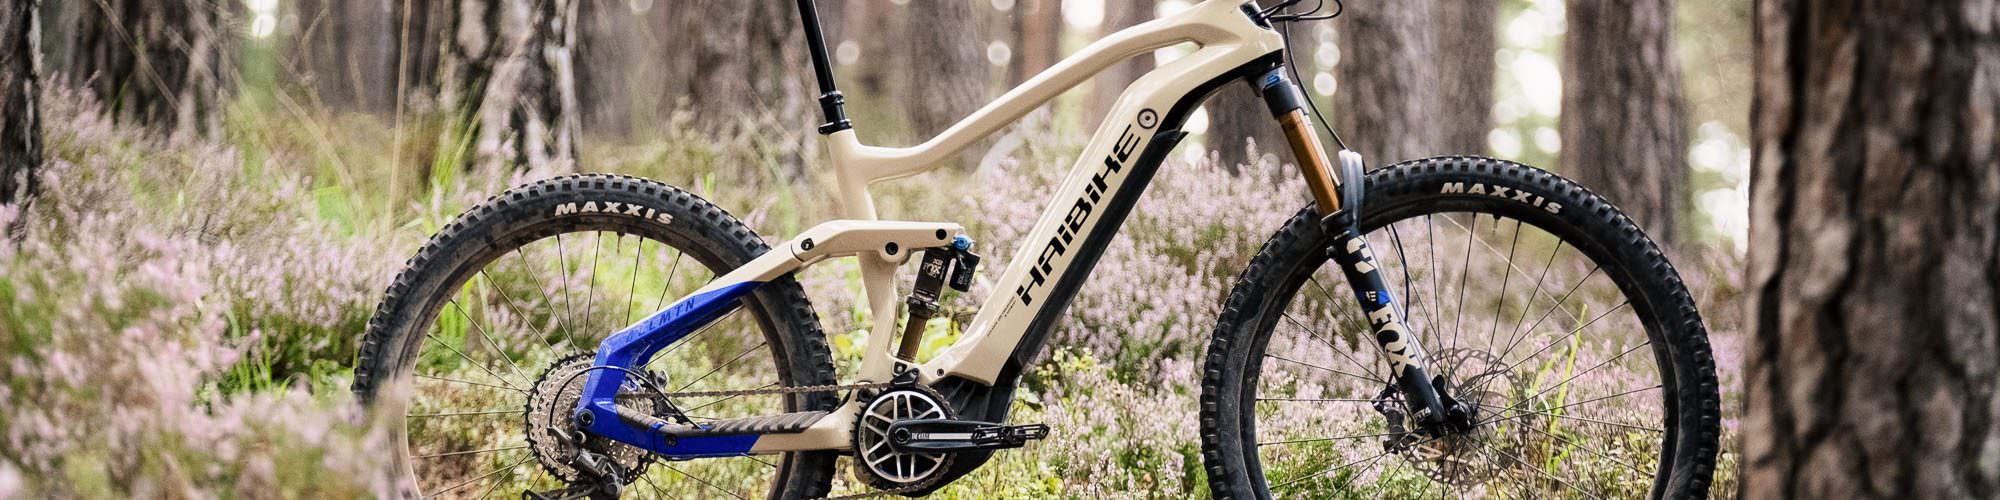 New 2021 Haibike Allmtn 7 In Review Aggressively Priced Trail Rocket With A Yamaha Pw X2 Motor E Mountainbike Magazine